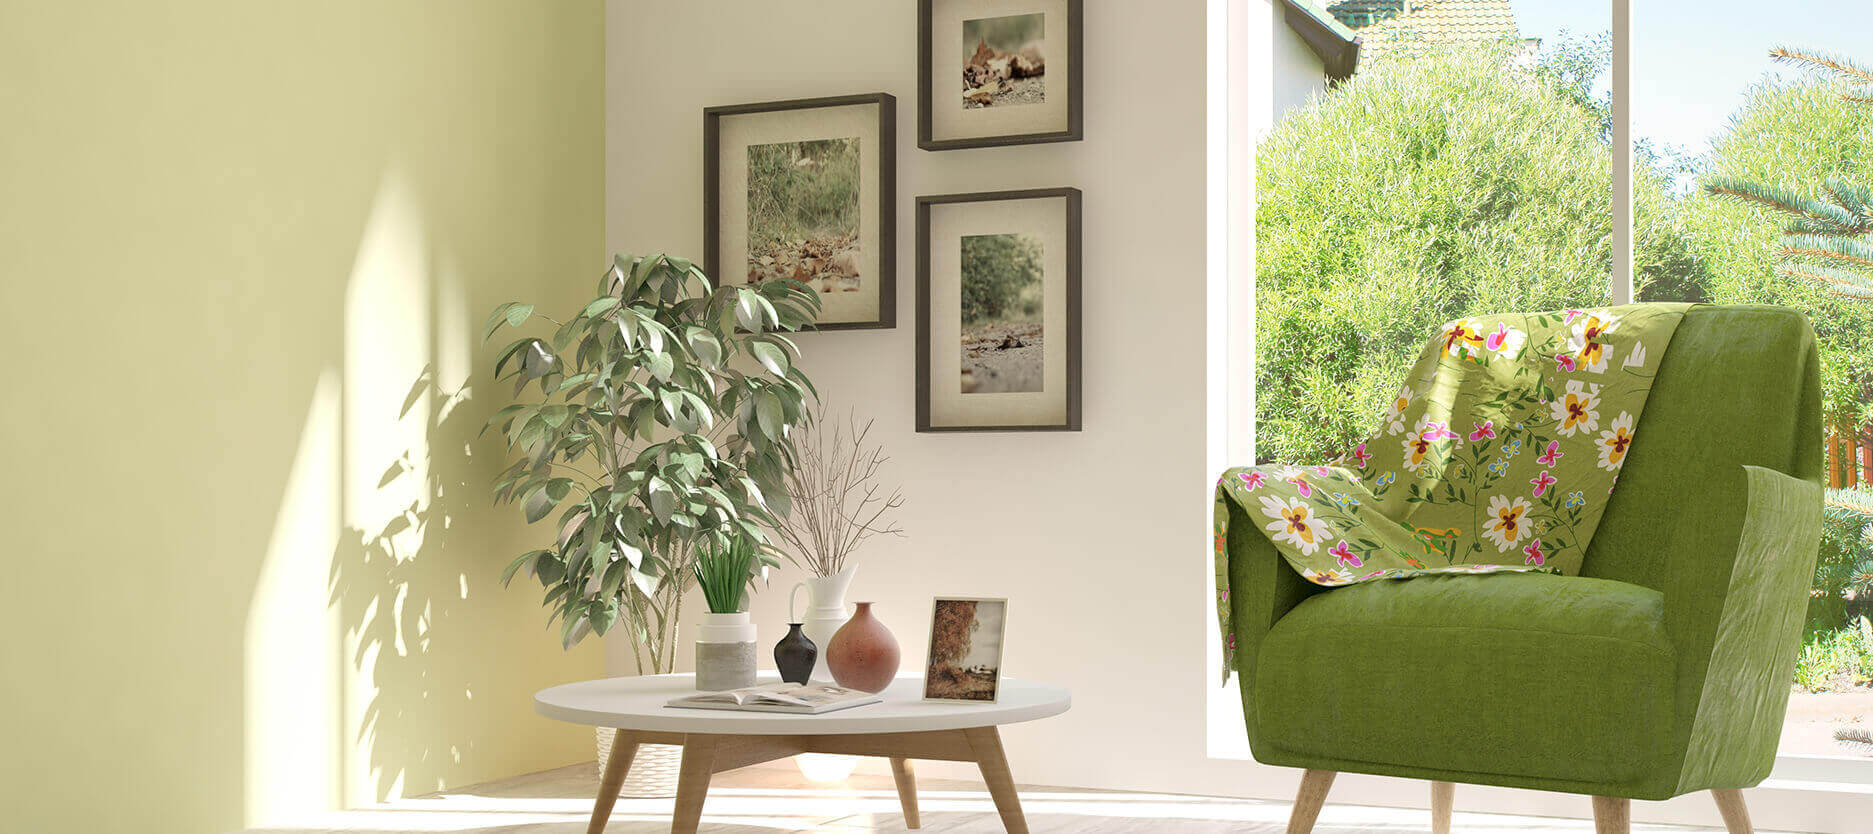 Incorporate Greens in your Living Room and Feel Closer to Nature